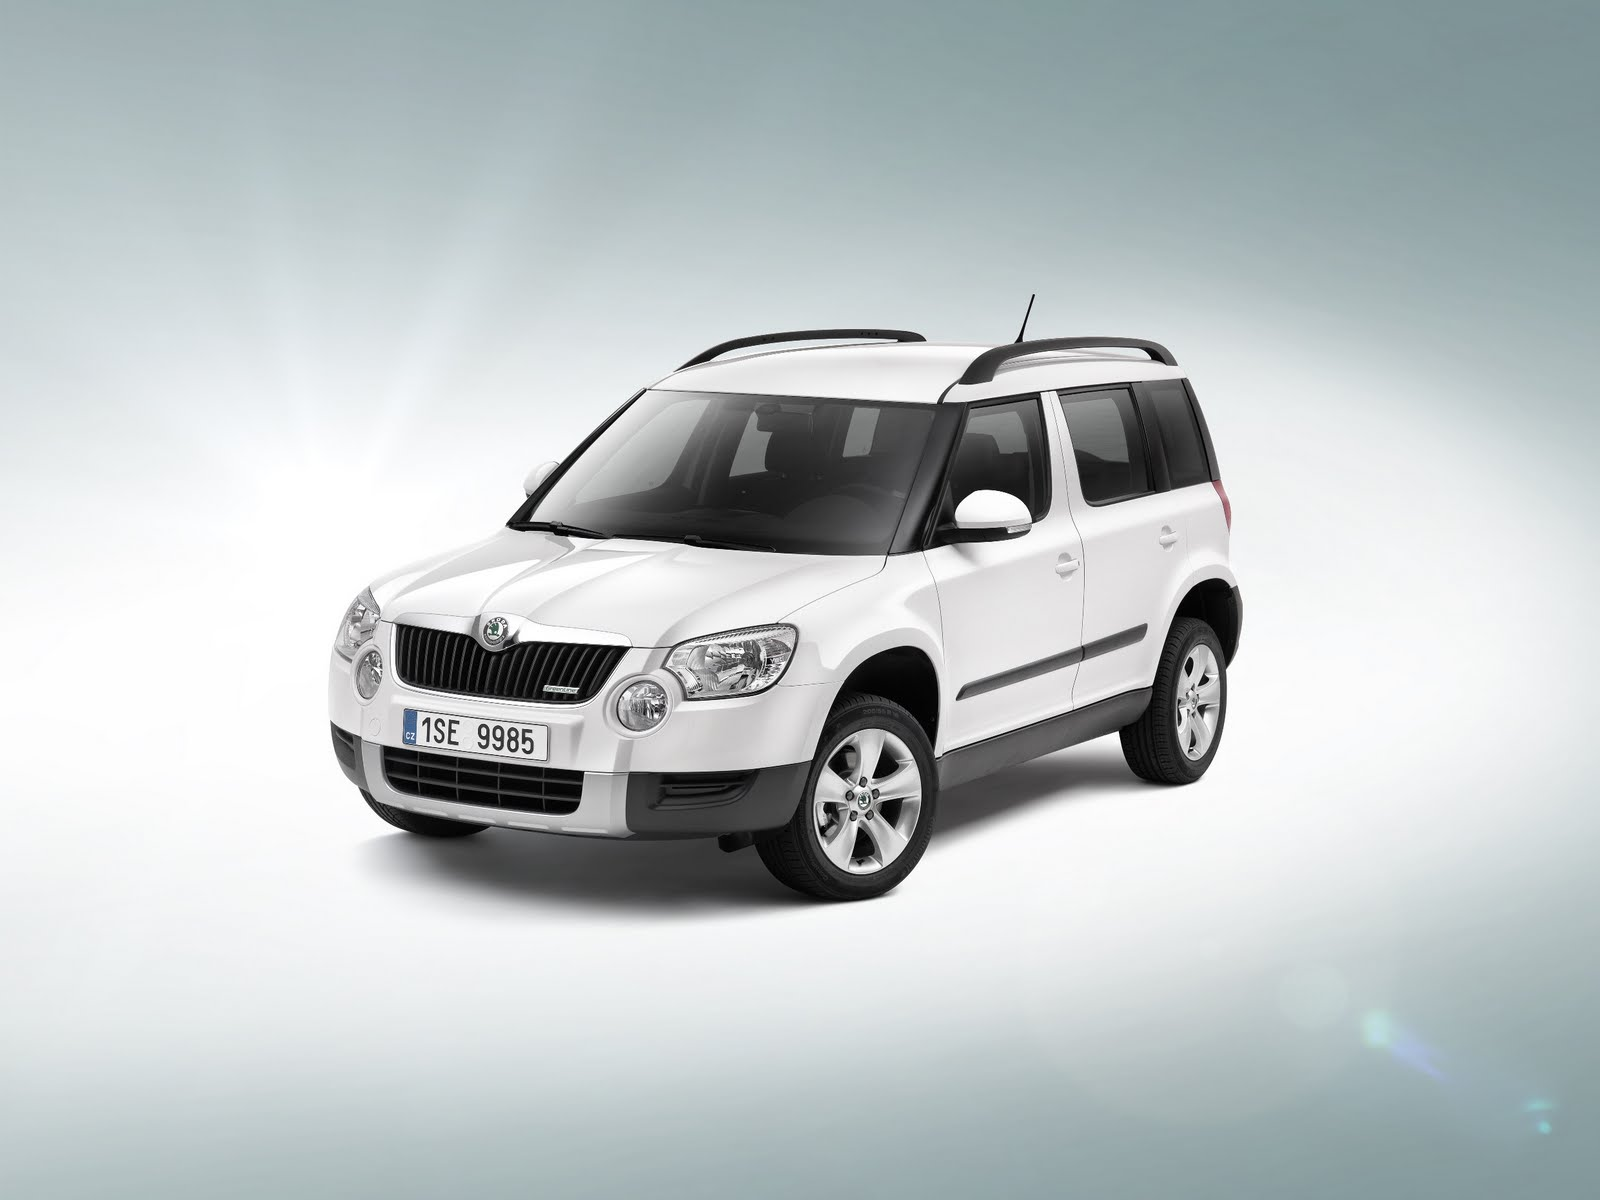 www emocionalvolante blogspot com skoda yeti 2011. Black Bedroom Furniture Sets. Home Design Ideas